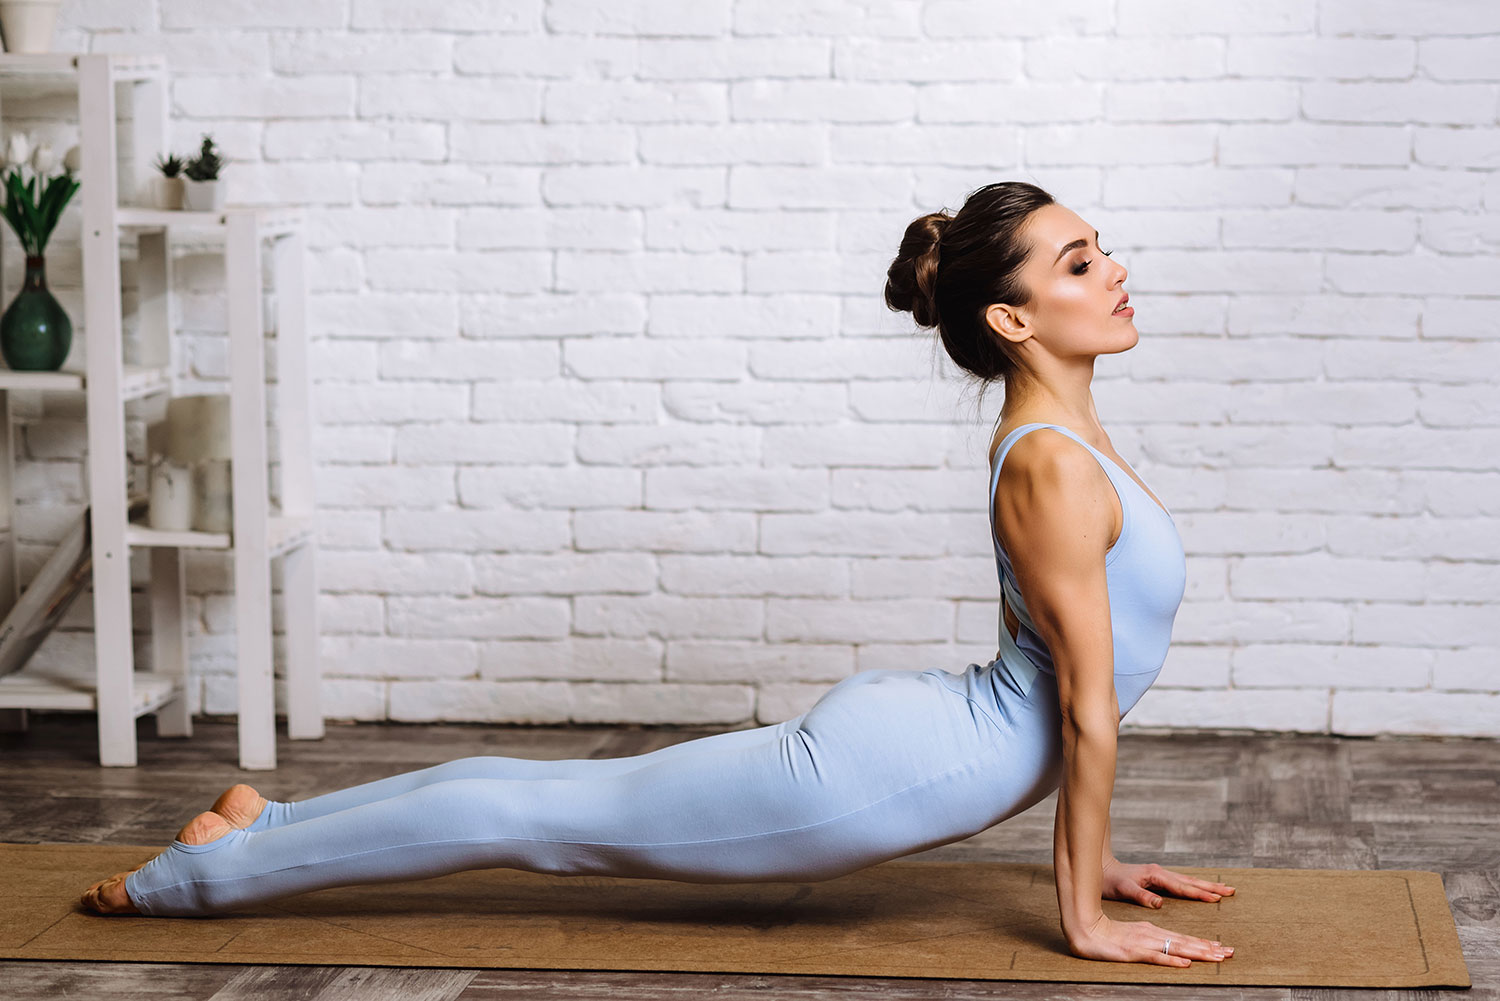 15 Yoga Poses to Relieve Tight Shoulder & Neck Muscles